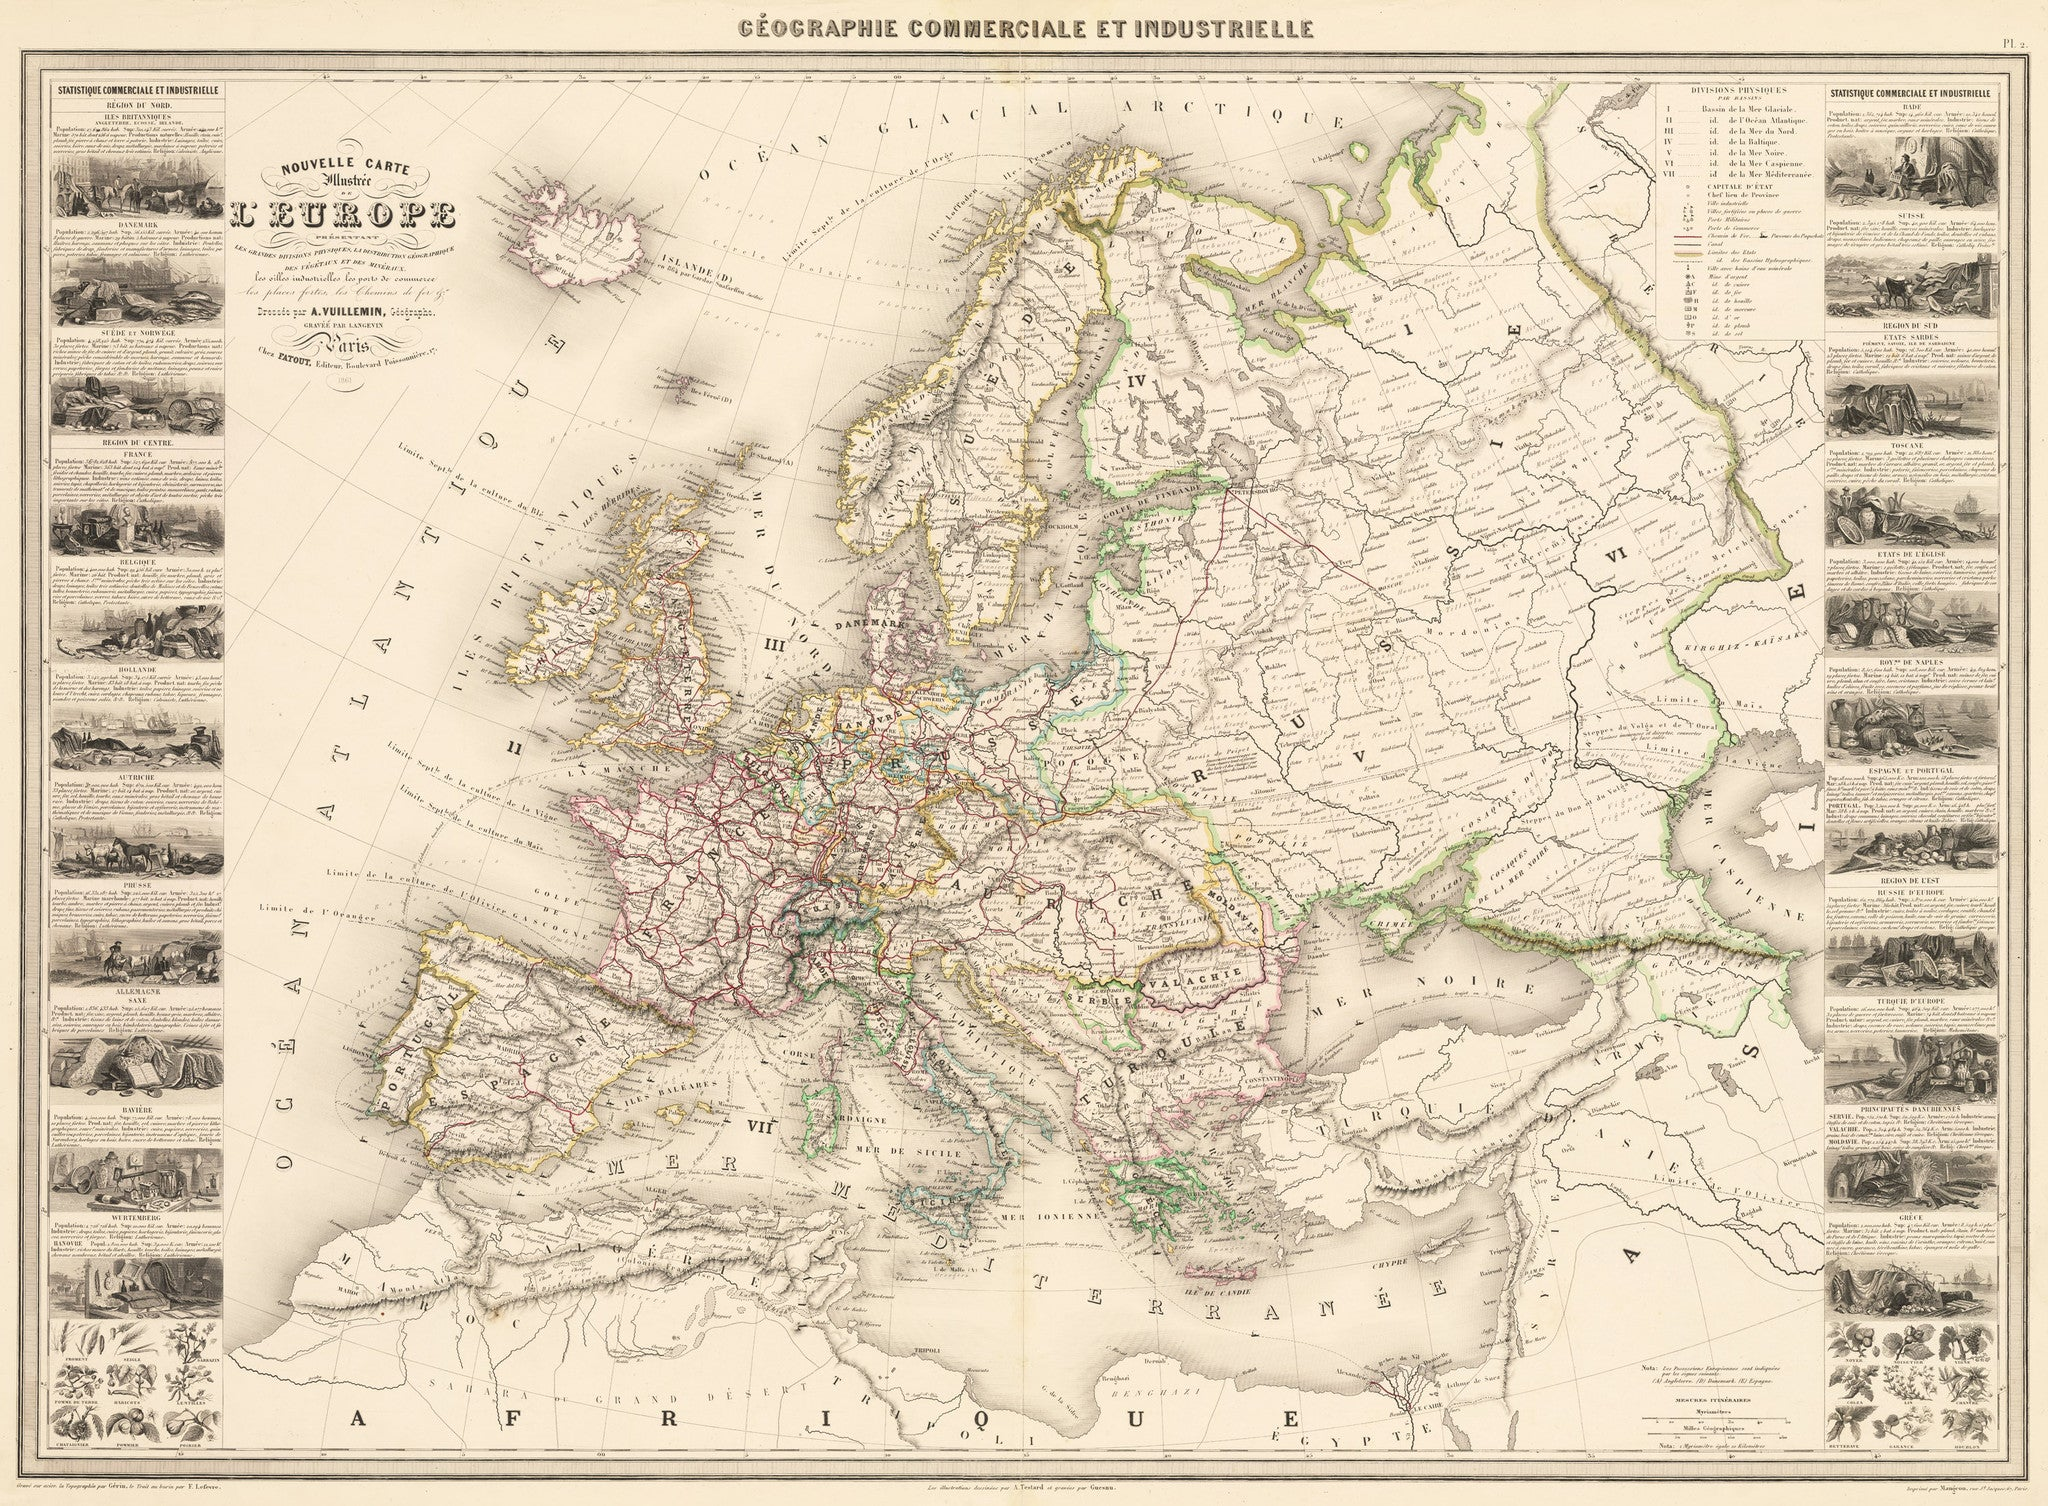 Carte Europe Maps.Vintage Maps Of Europe Tagged 19th Century The Vintage